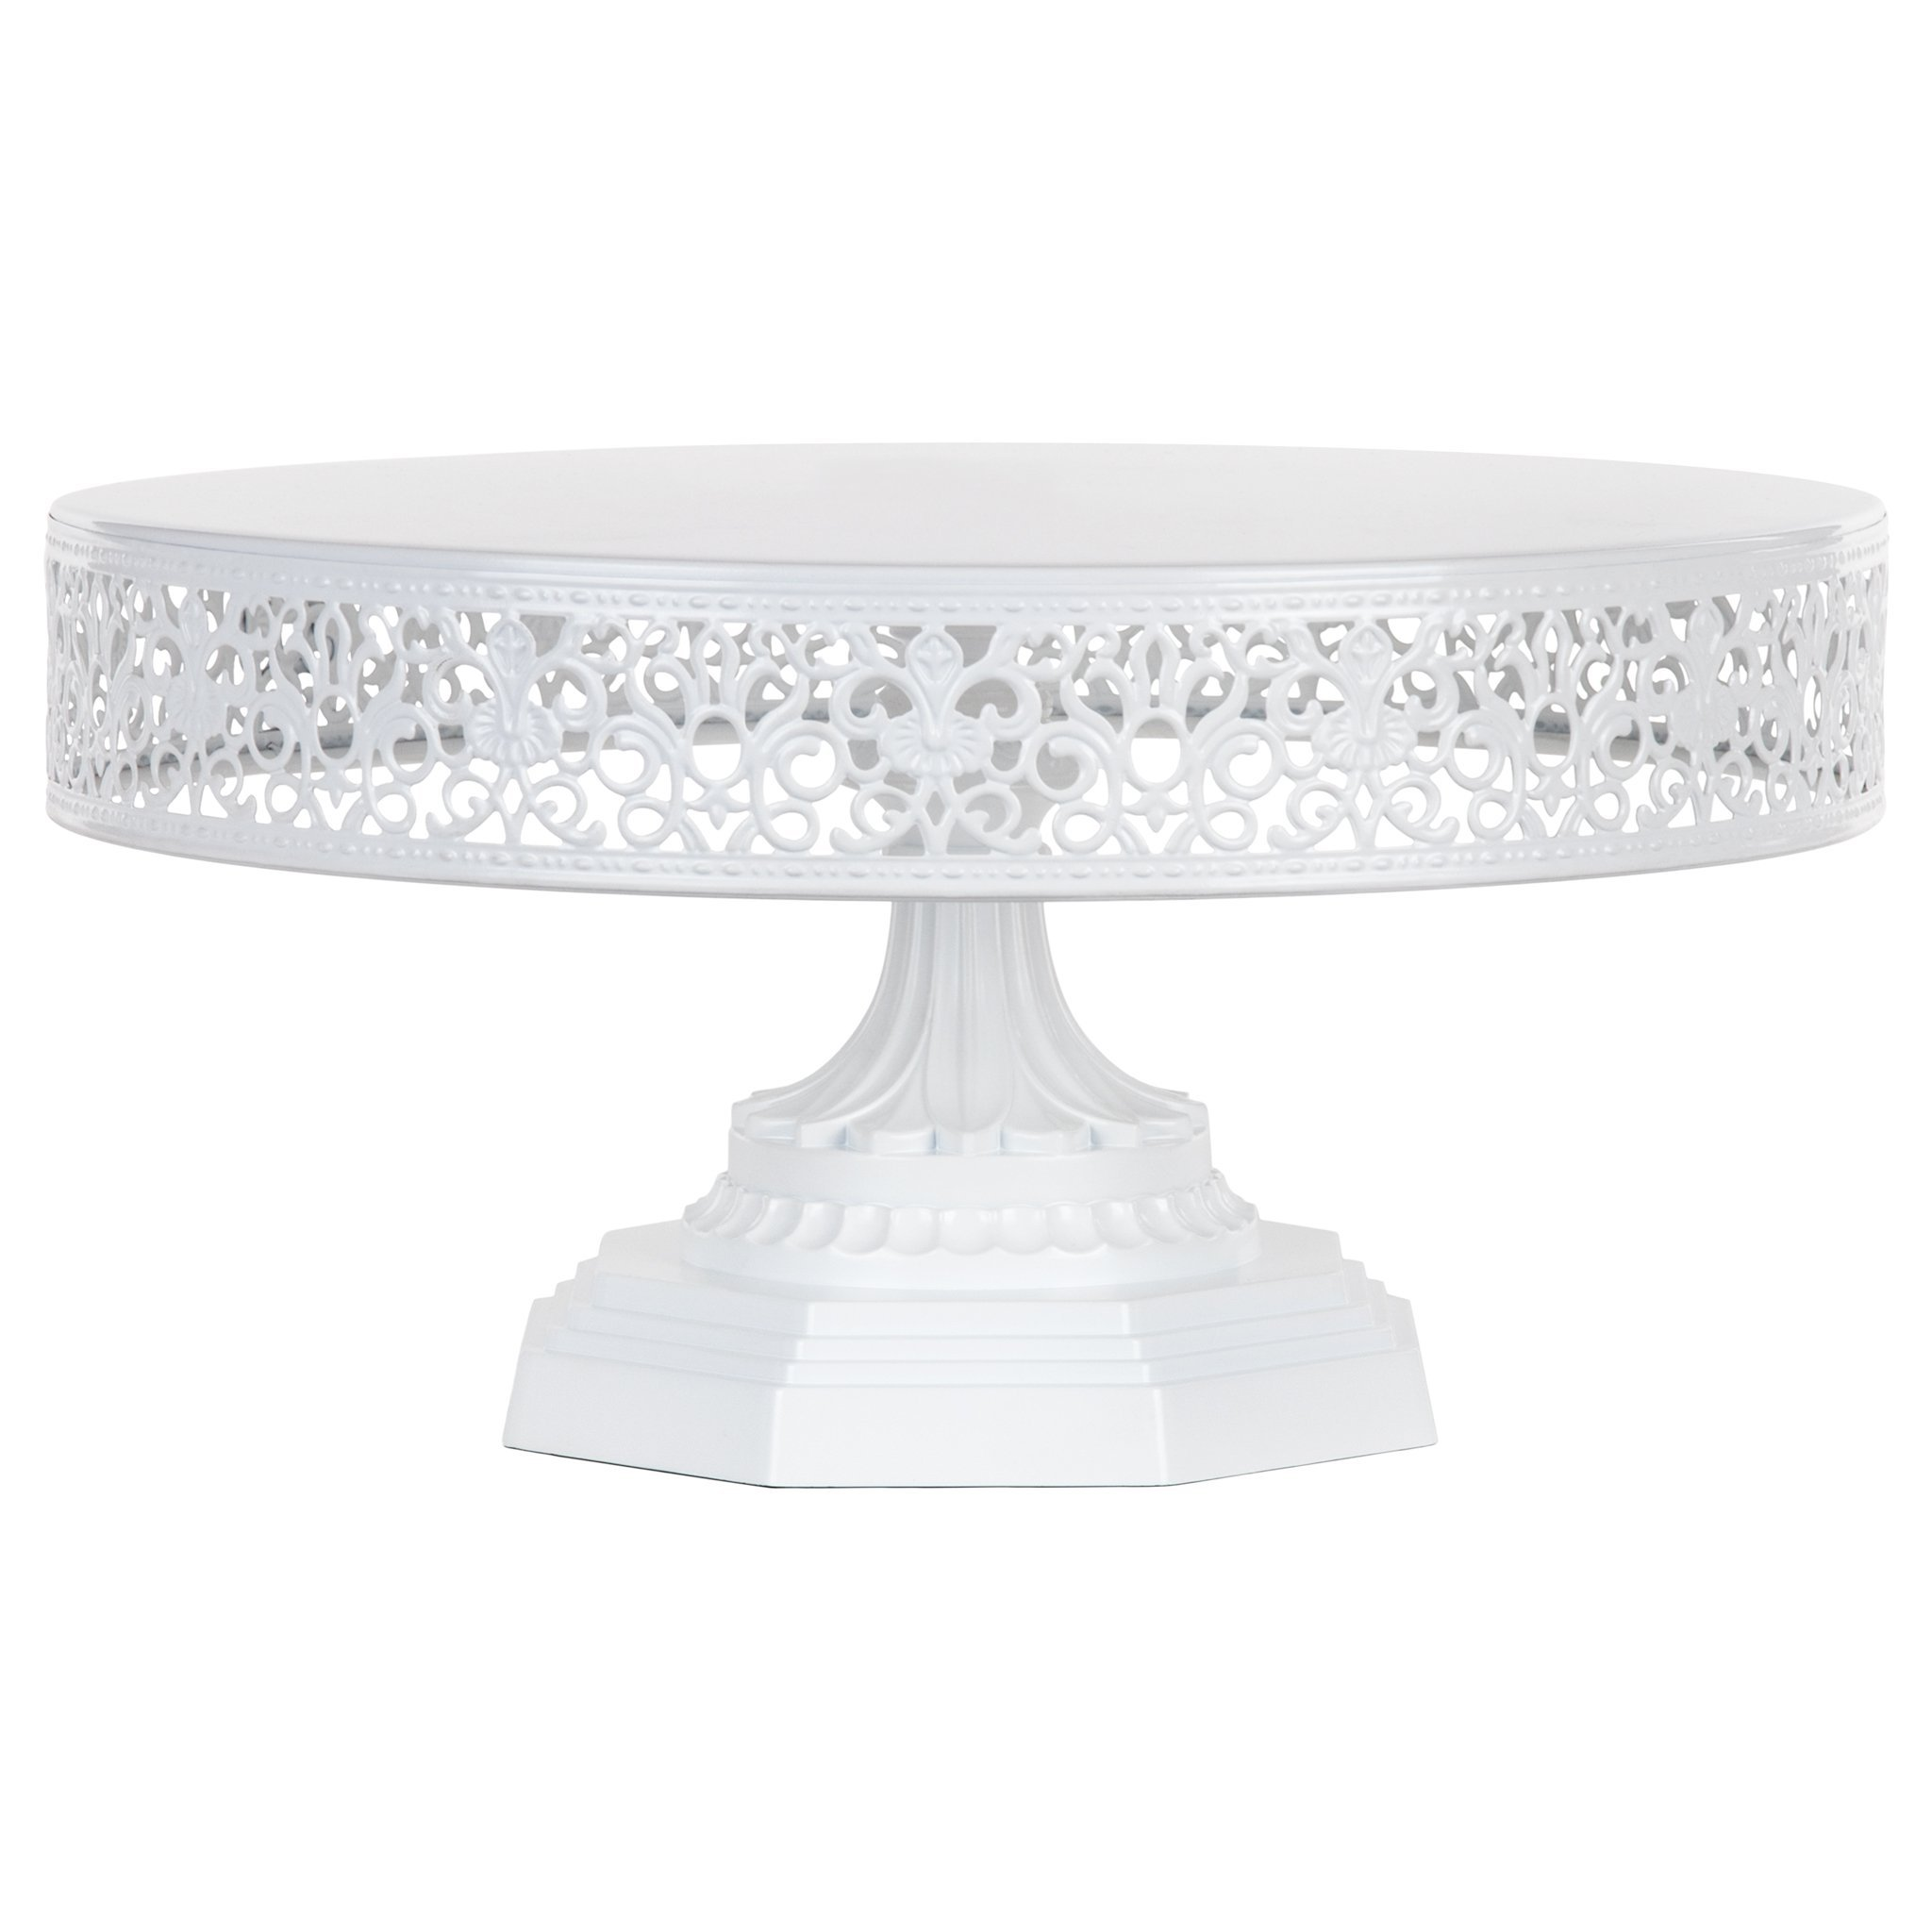 Amalfi Decor 12-Inch Metal Cake Stand, Round Steel Display Pedestal for Wedding Events Birthday Party Dessert Cupcake Plate (White)